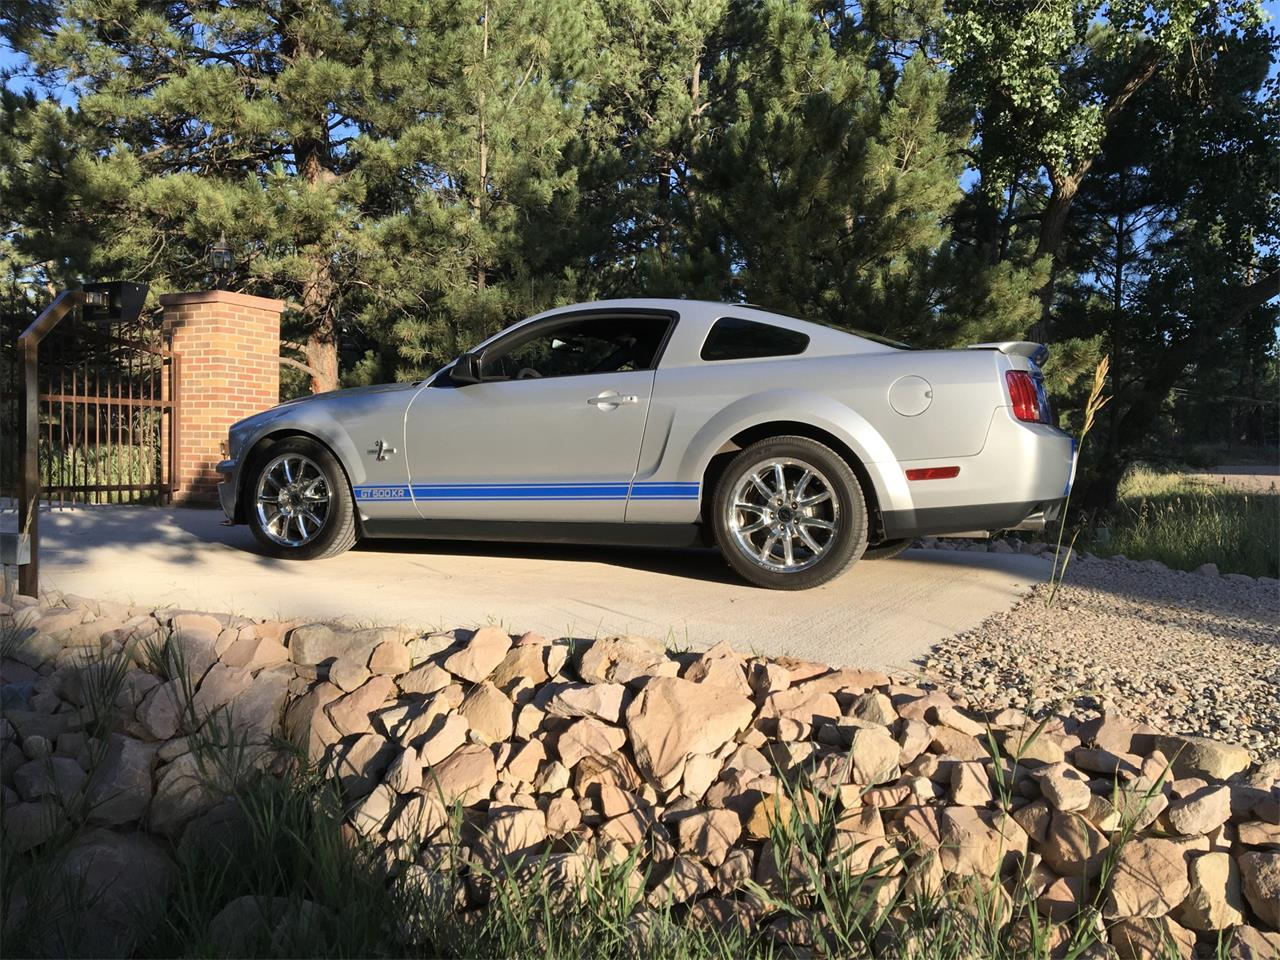 2009 Shelby GT500 (CC-1258197) for sale in Parker, Colorado